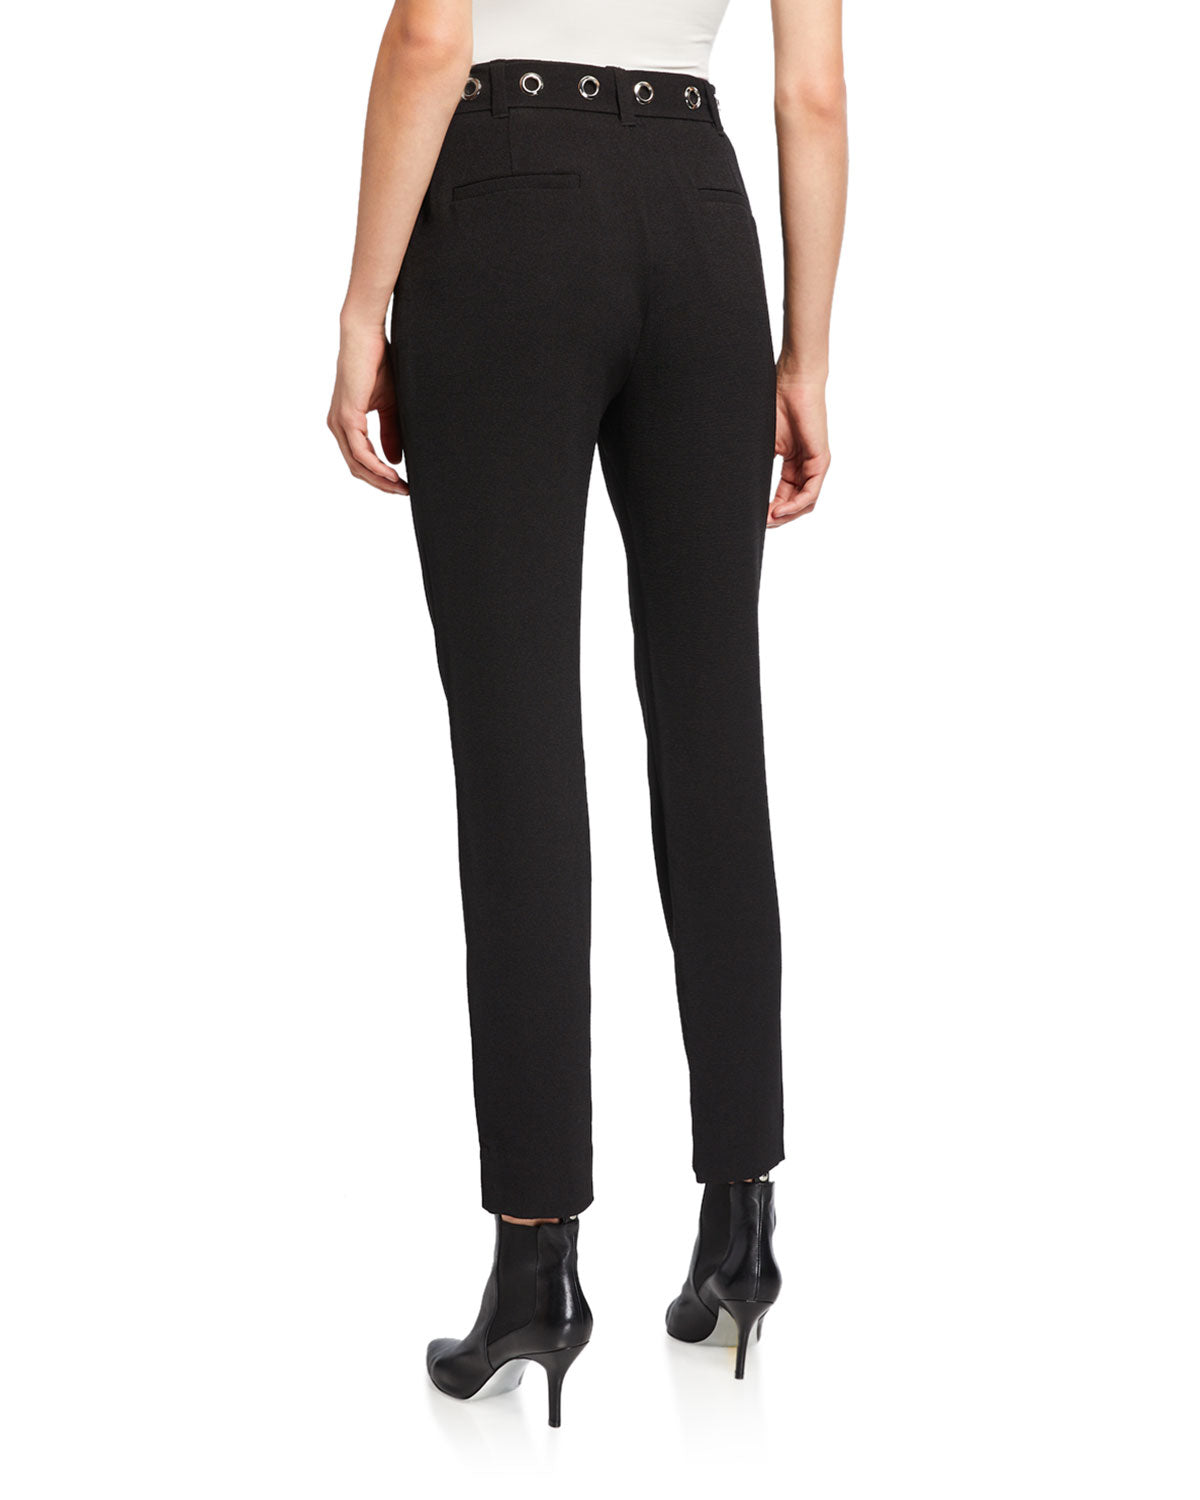 RACHEL Rachel Roy Women's Zane Belted Ankle Pants Black